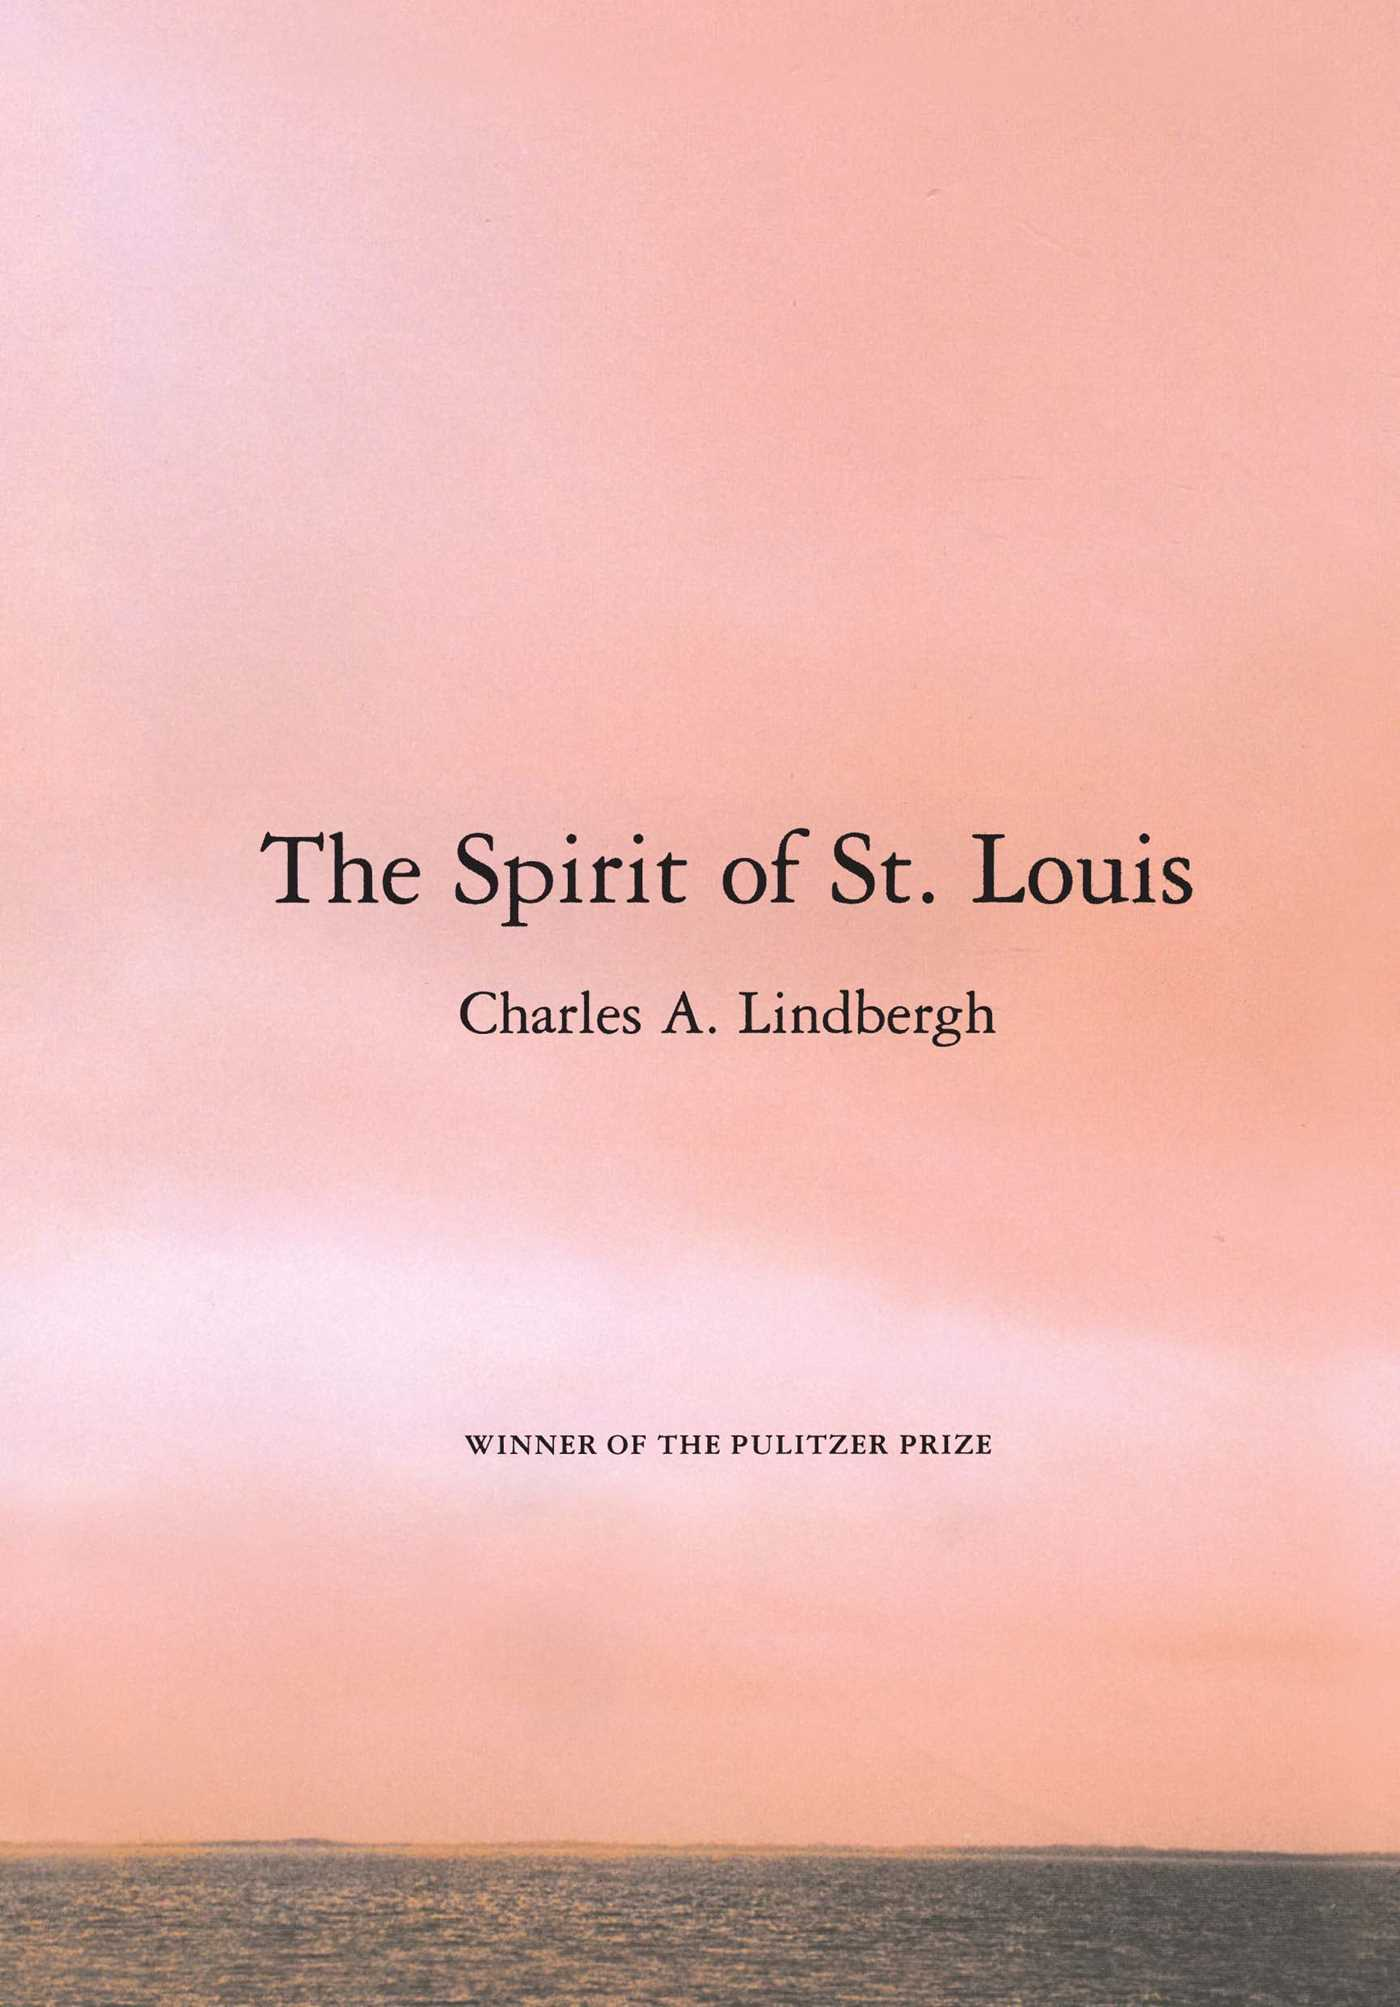 The-spirit-of-st-louis-9780743237055_hr